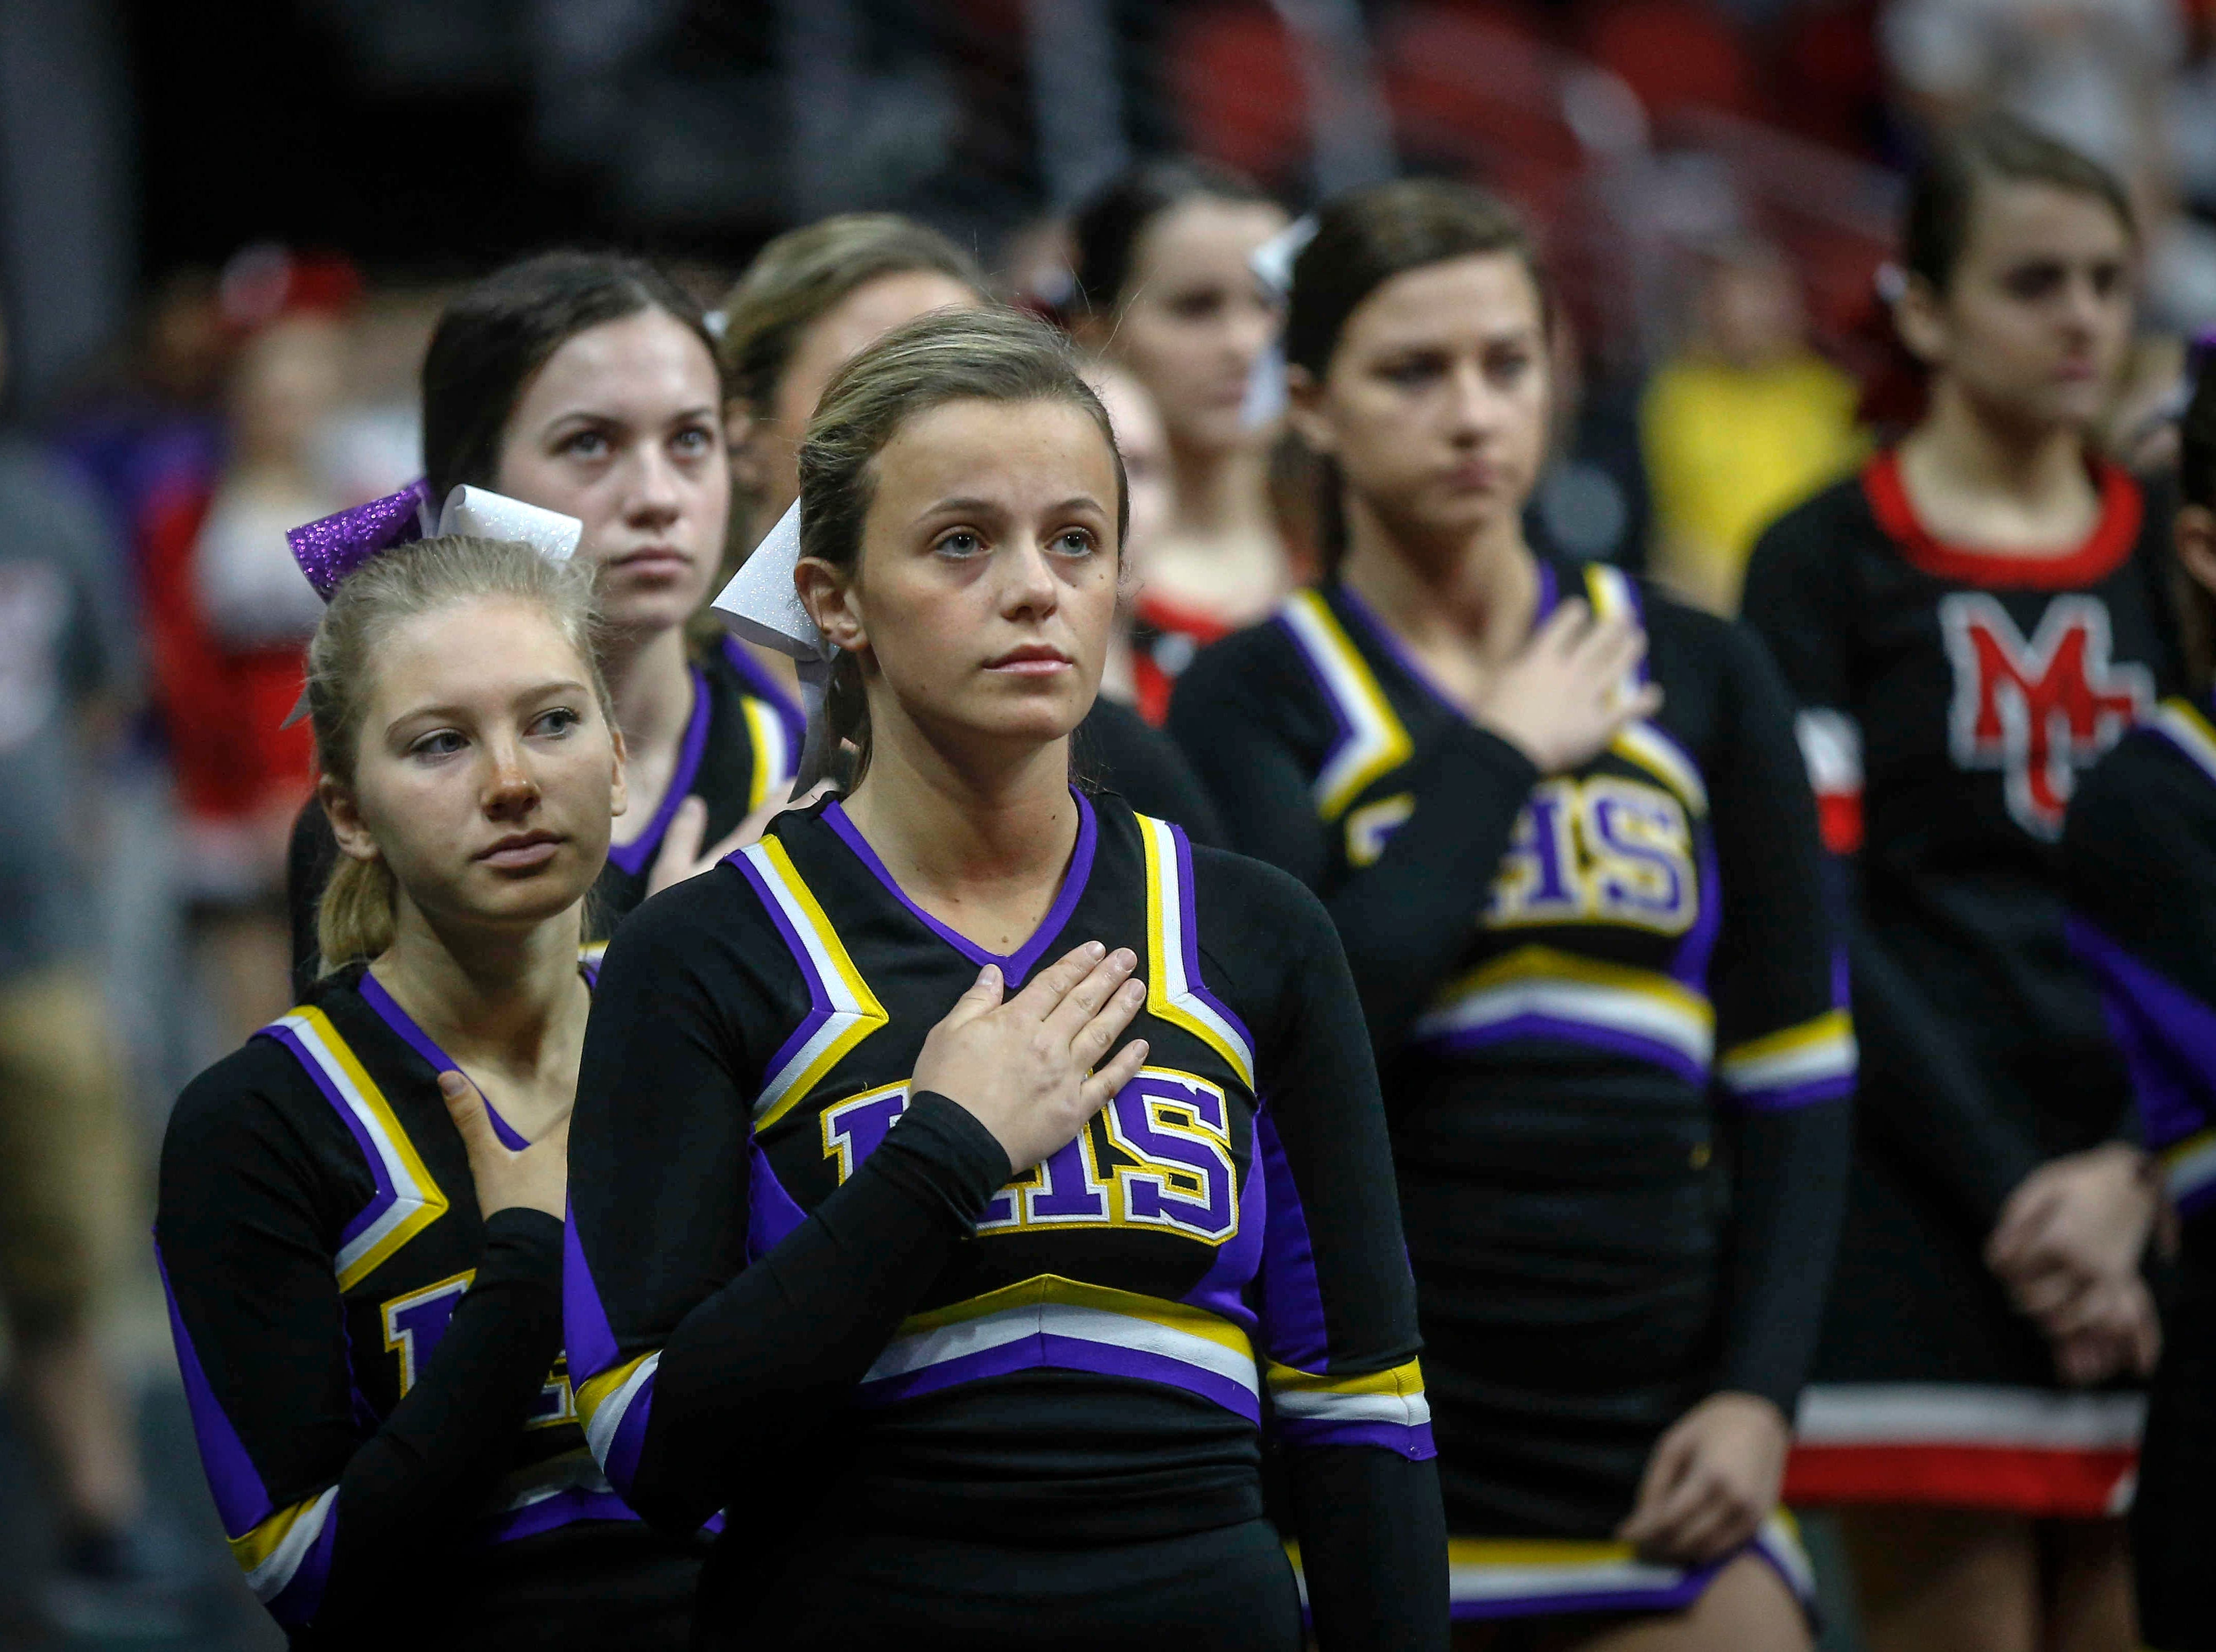 The Indianola cheerleaders observe the National Anthem prior to the start of the state wrestling quarterfinals on Friday, Feb. 15, 2019, at Wells Fargo Arena in Des Moines.